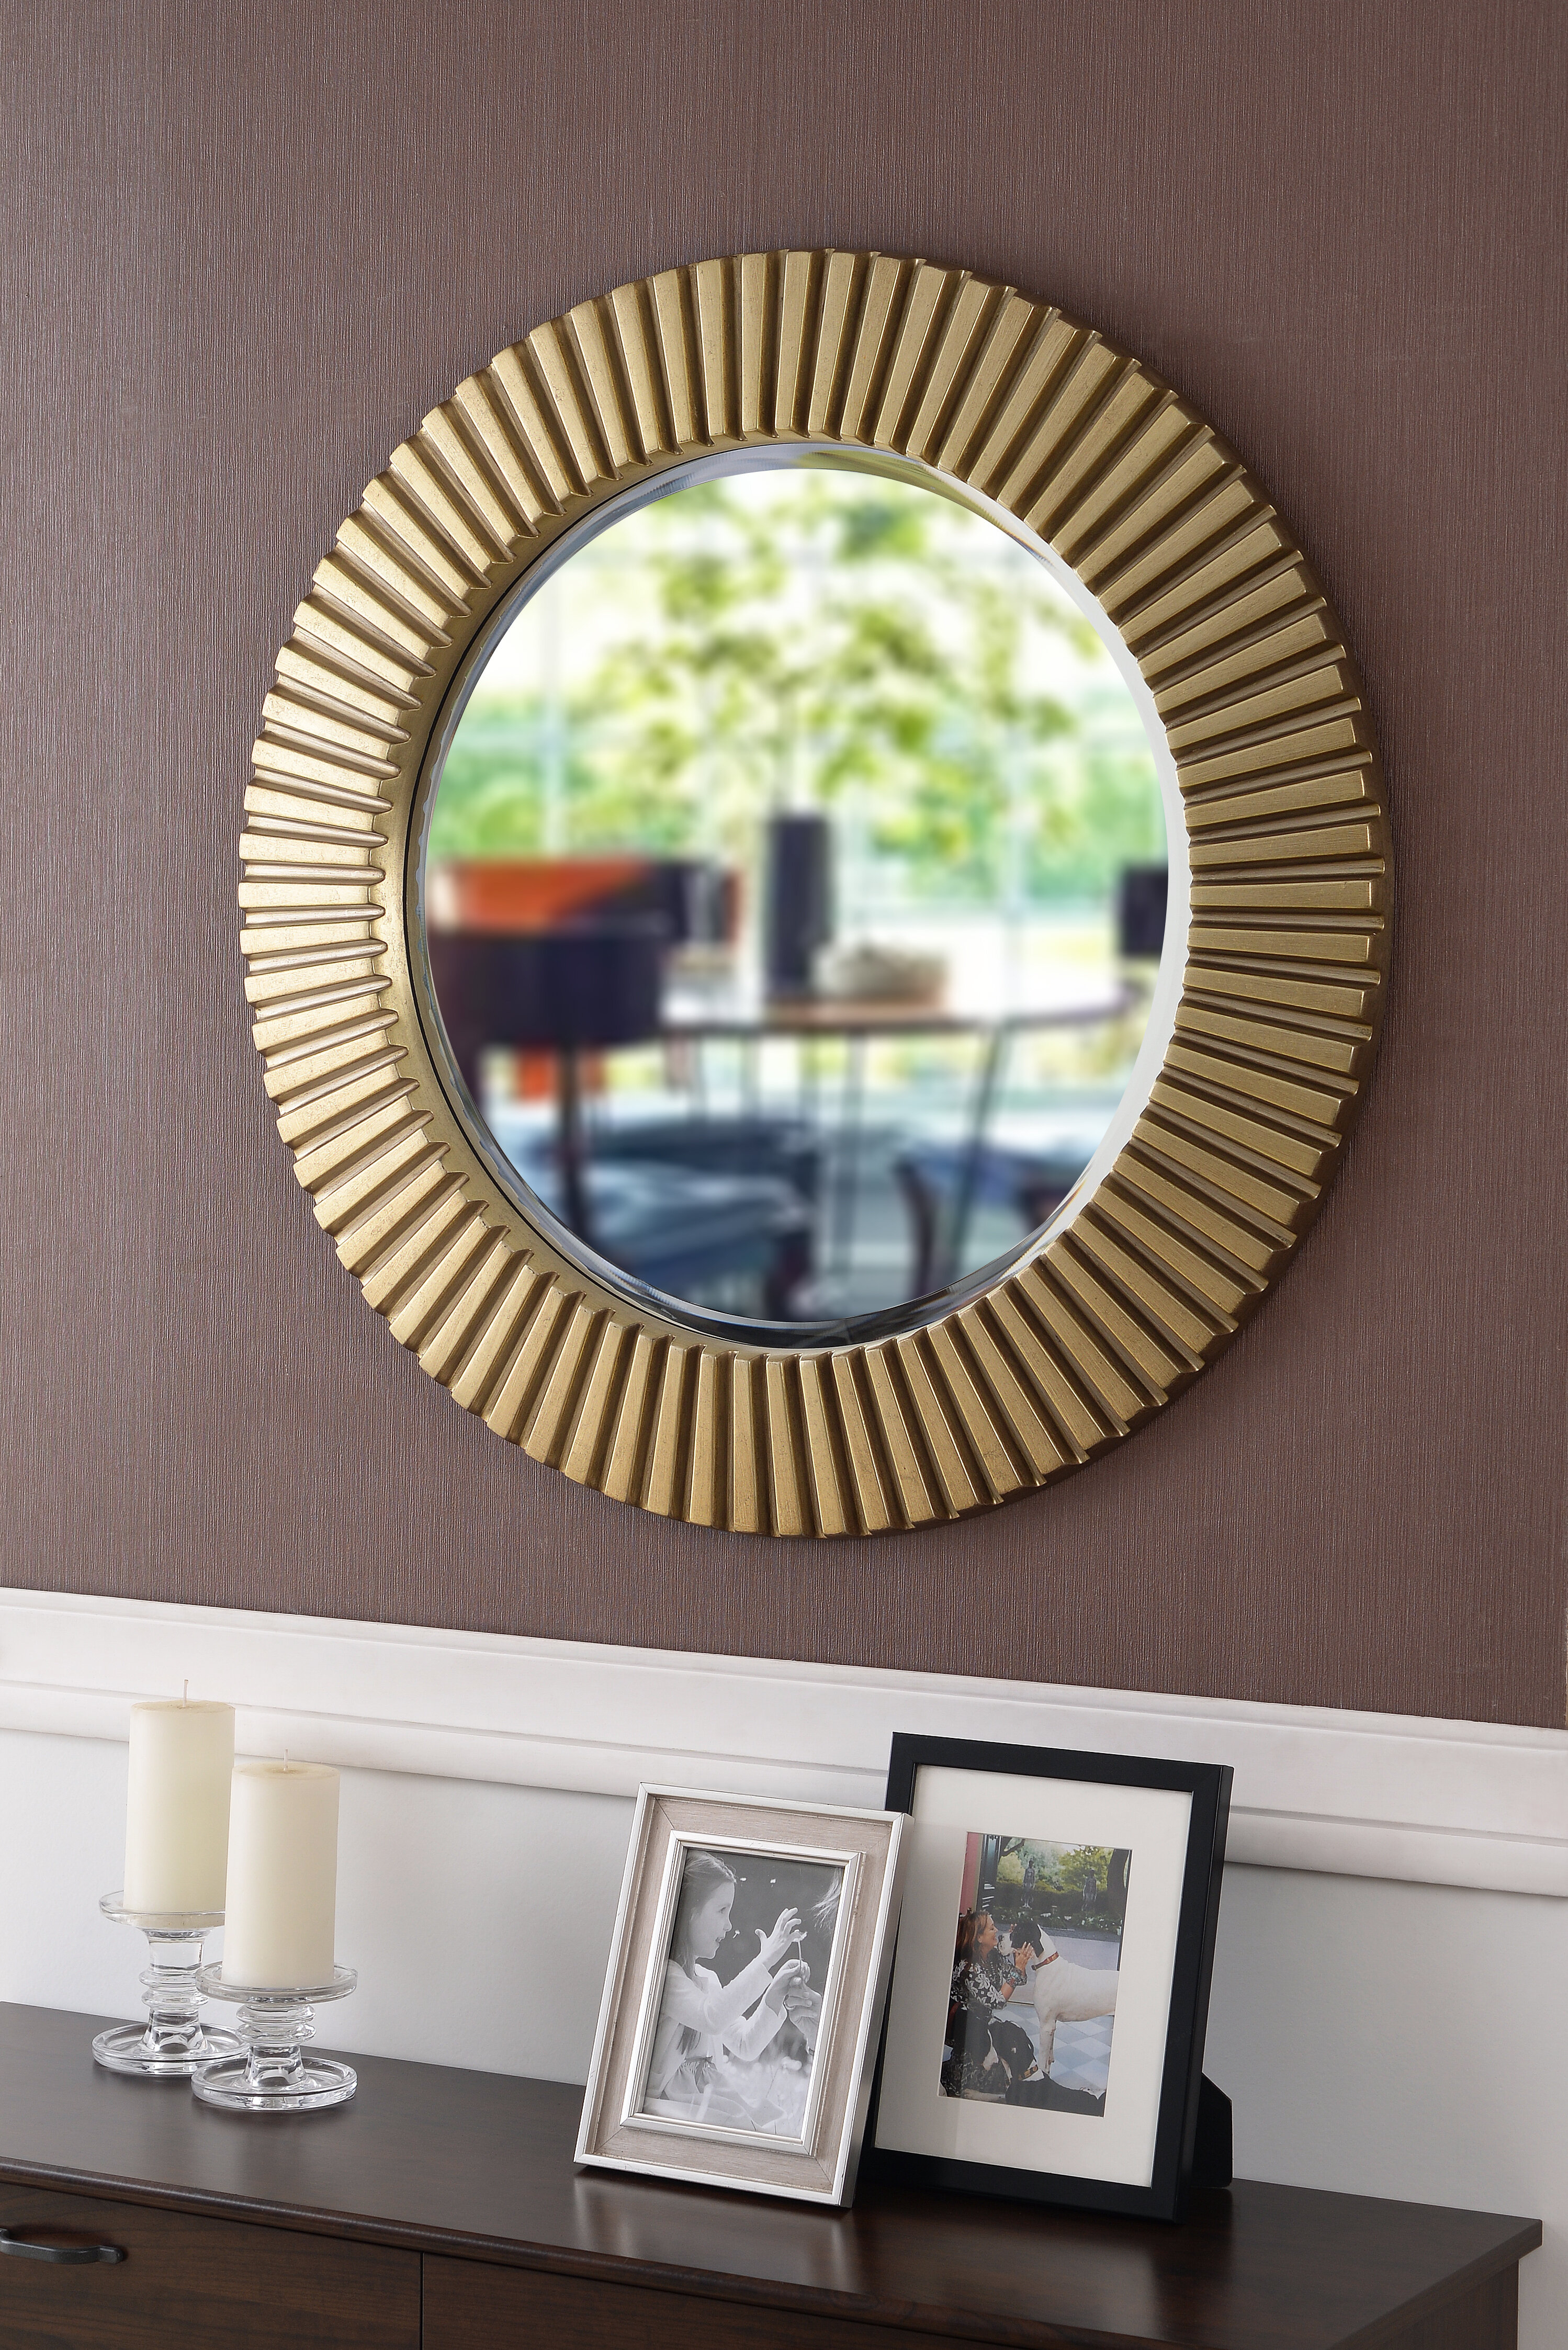 Round Eclectic Accent Mirror Regarding Round Eclectic Accent Mirrors (View 2 of 30)